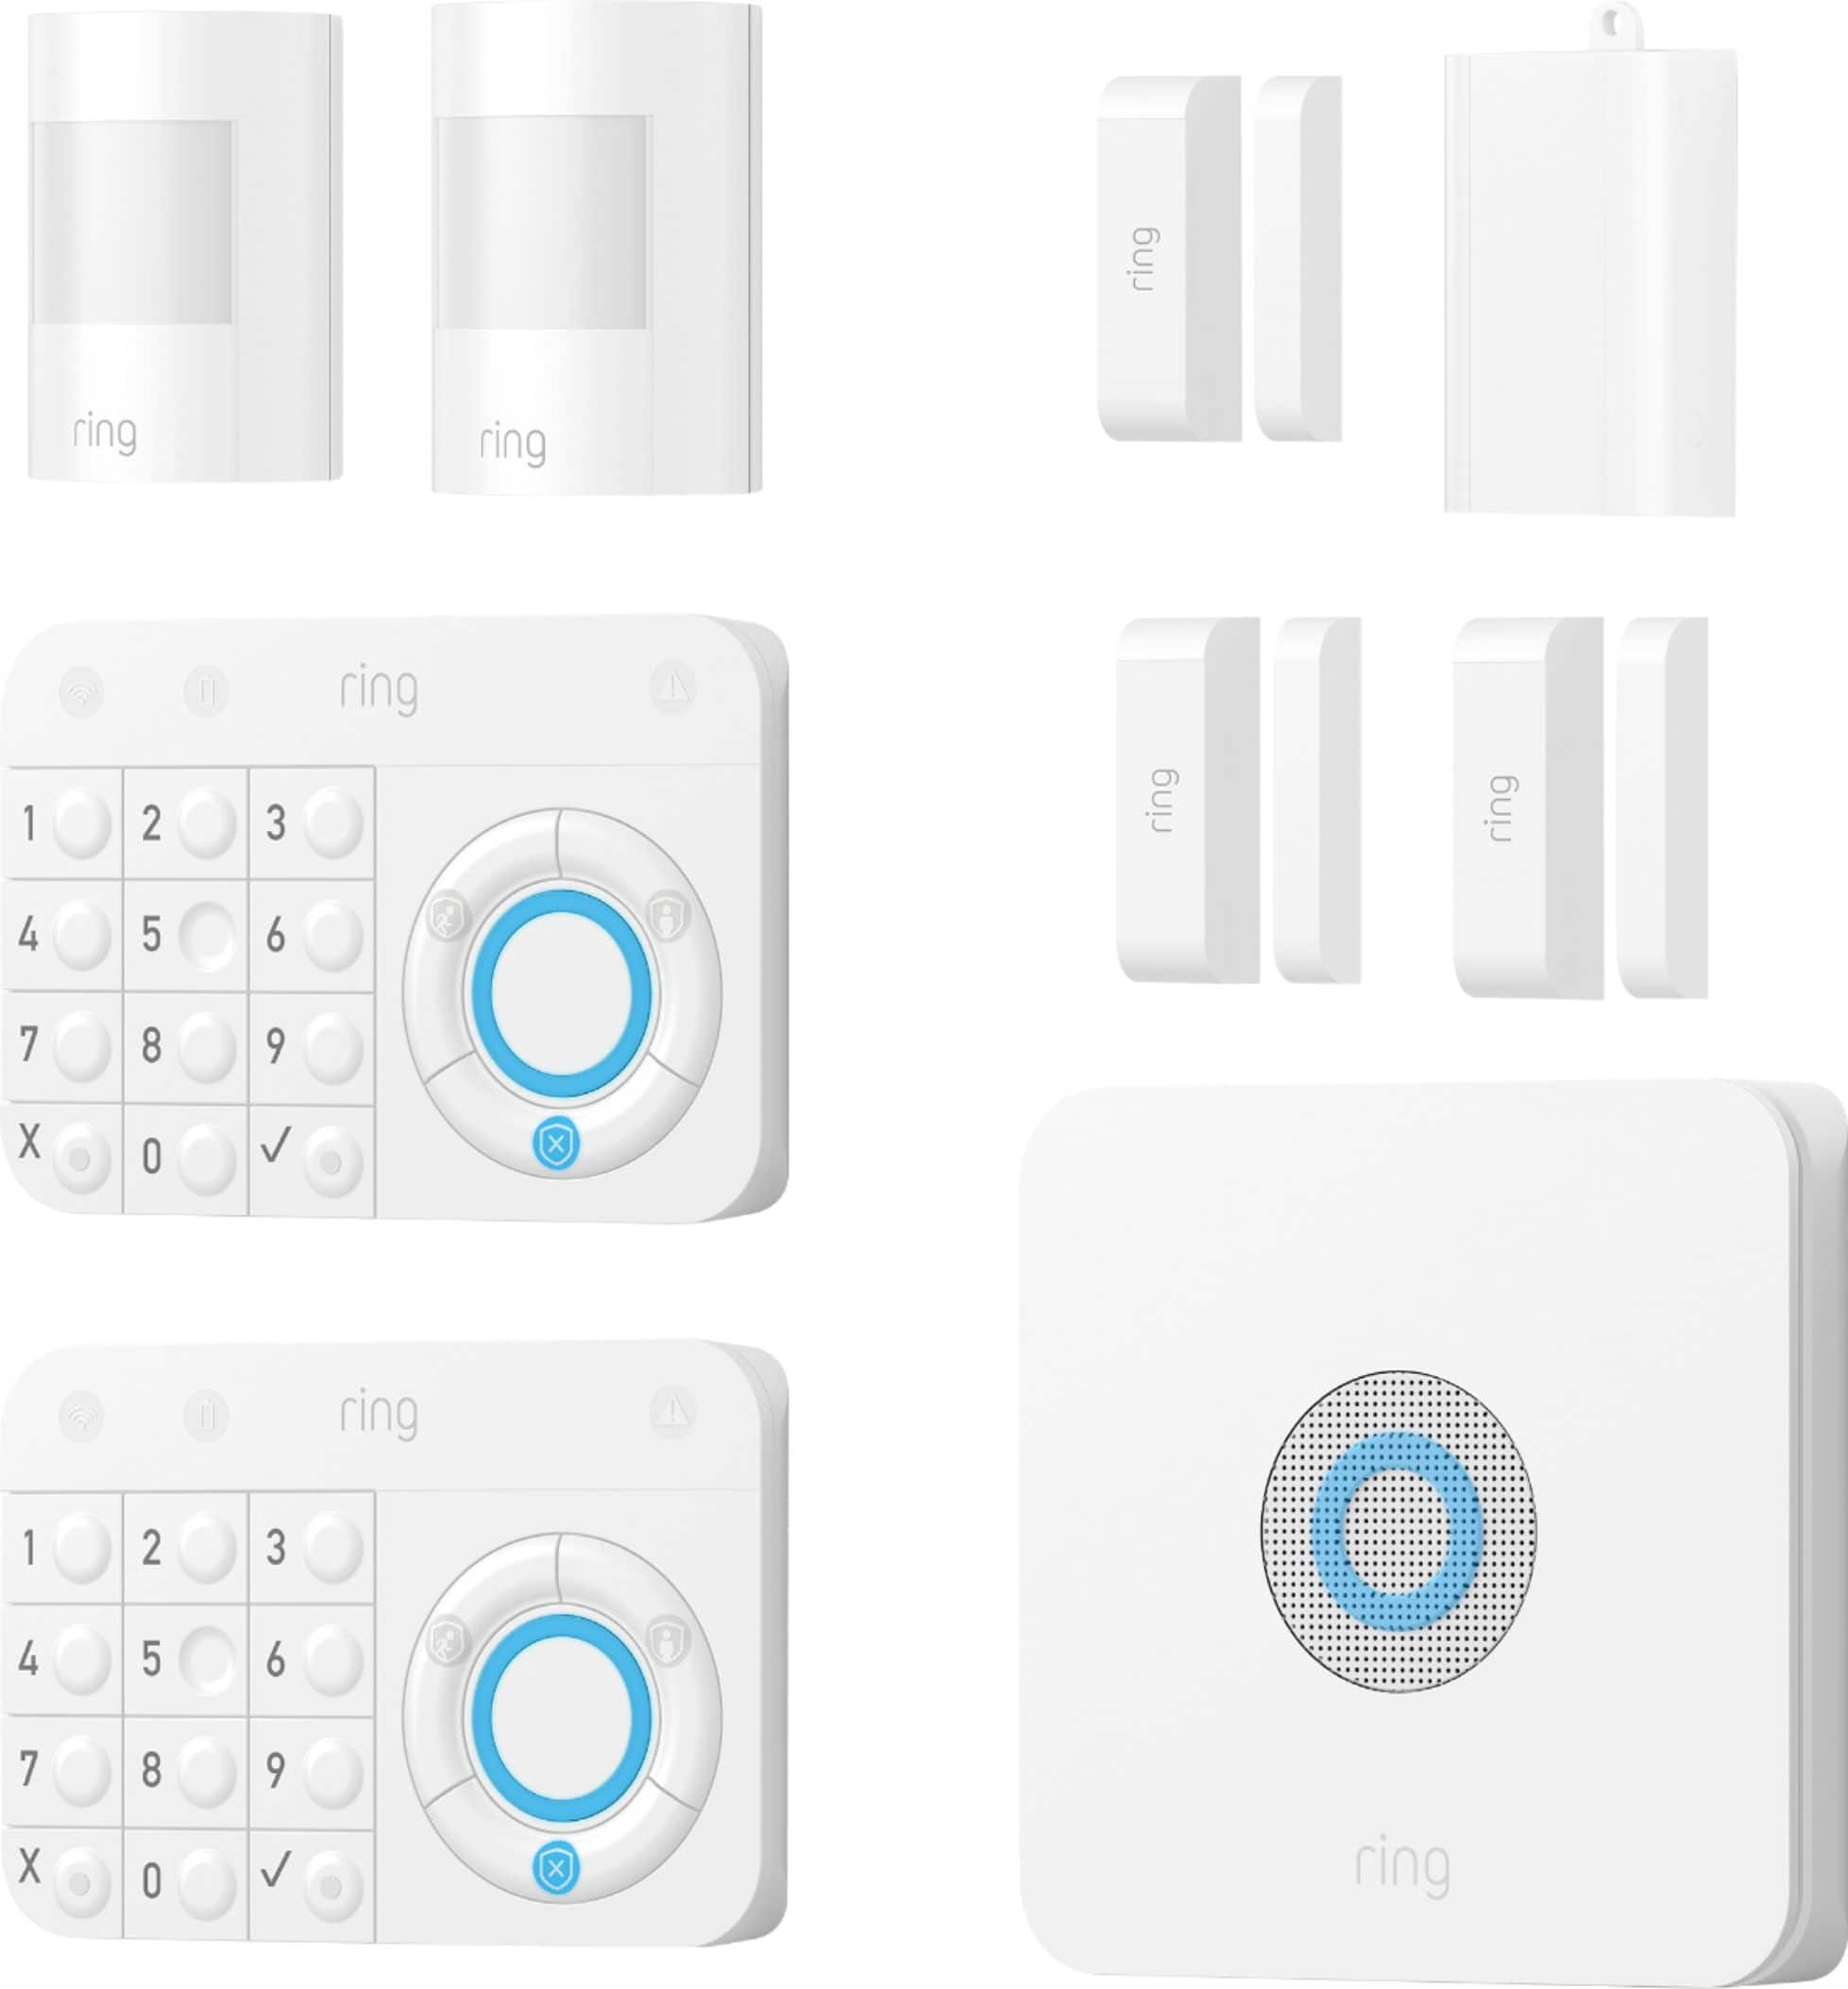 Ring Alarm Starter Home Security Kit White- Best Buy $179.99 with Free Echo Dot